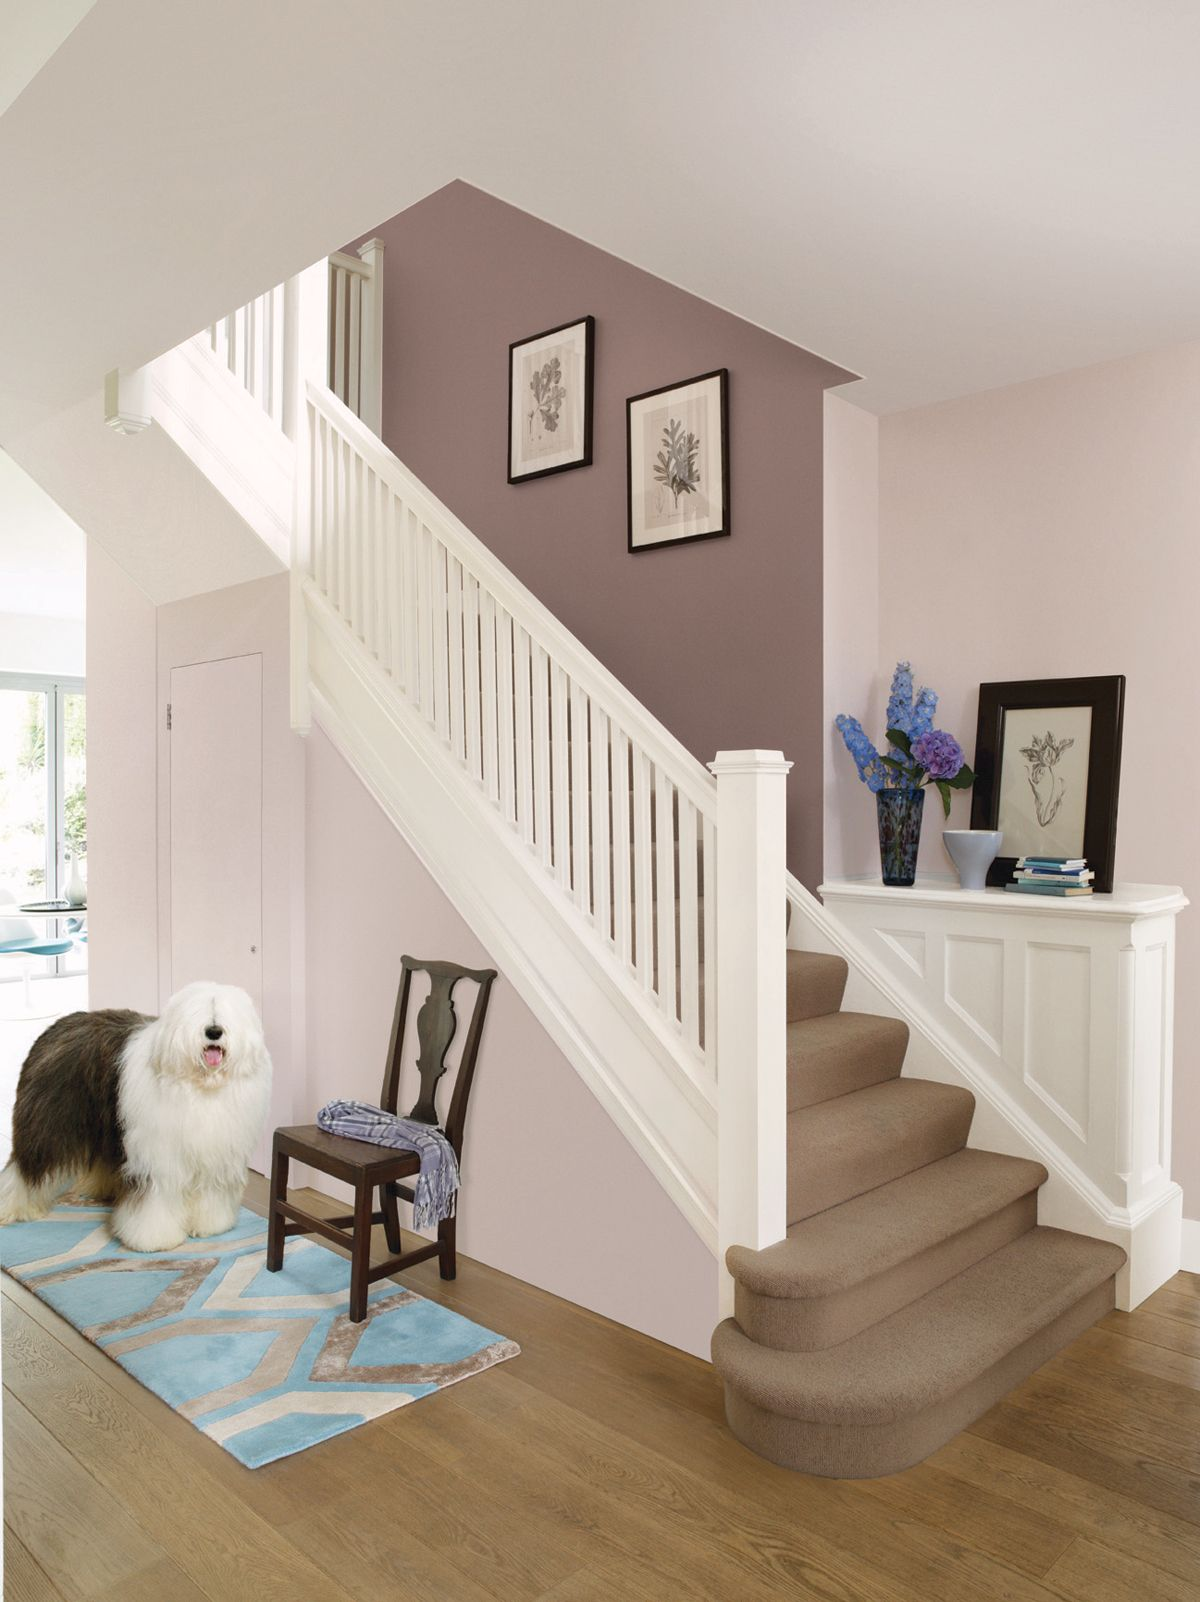 Dulux Nutmeg White Other Kitchen Walls Dining Room Colours Hallway Colour Schemeshallway Paint